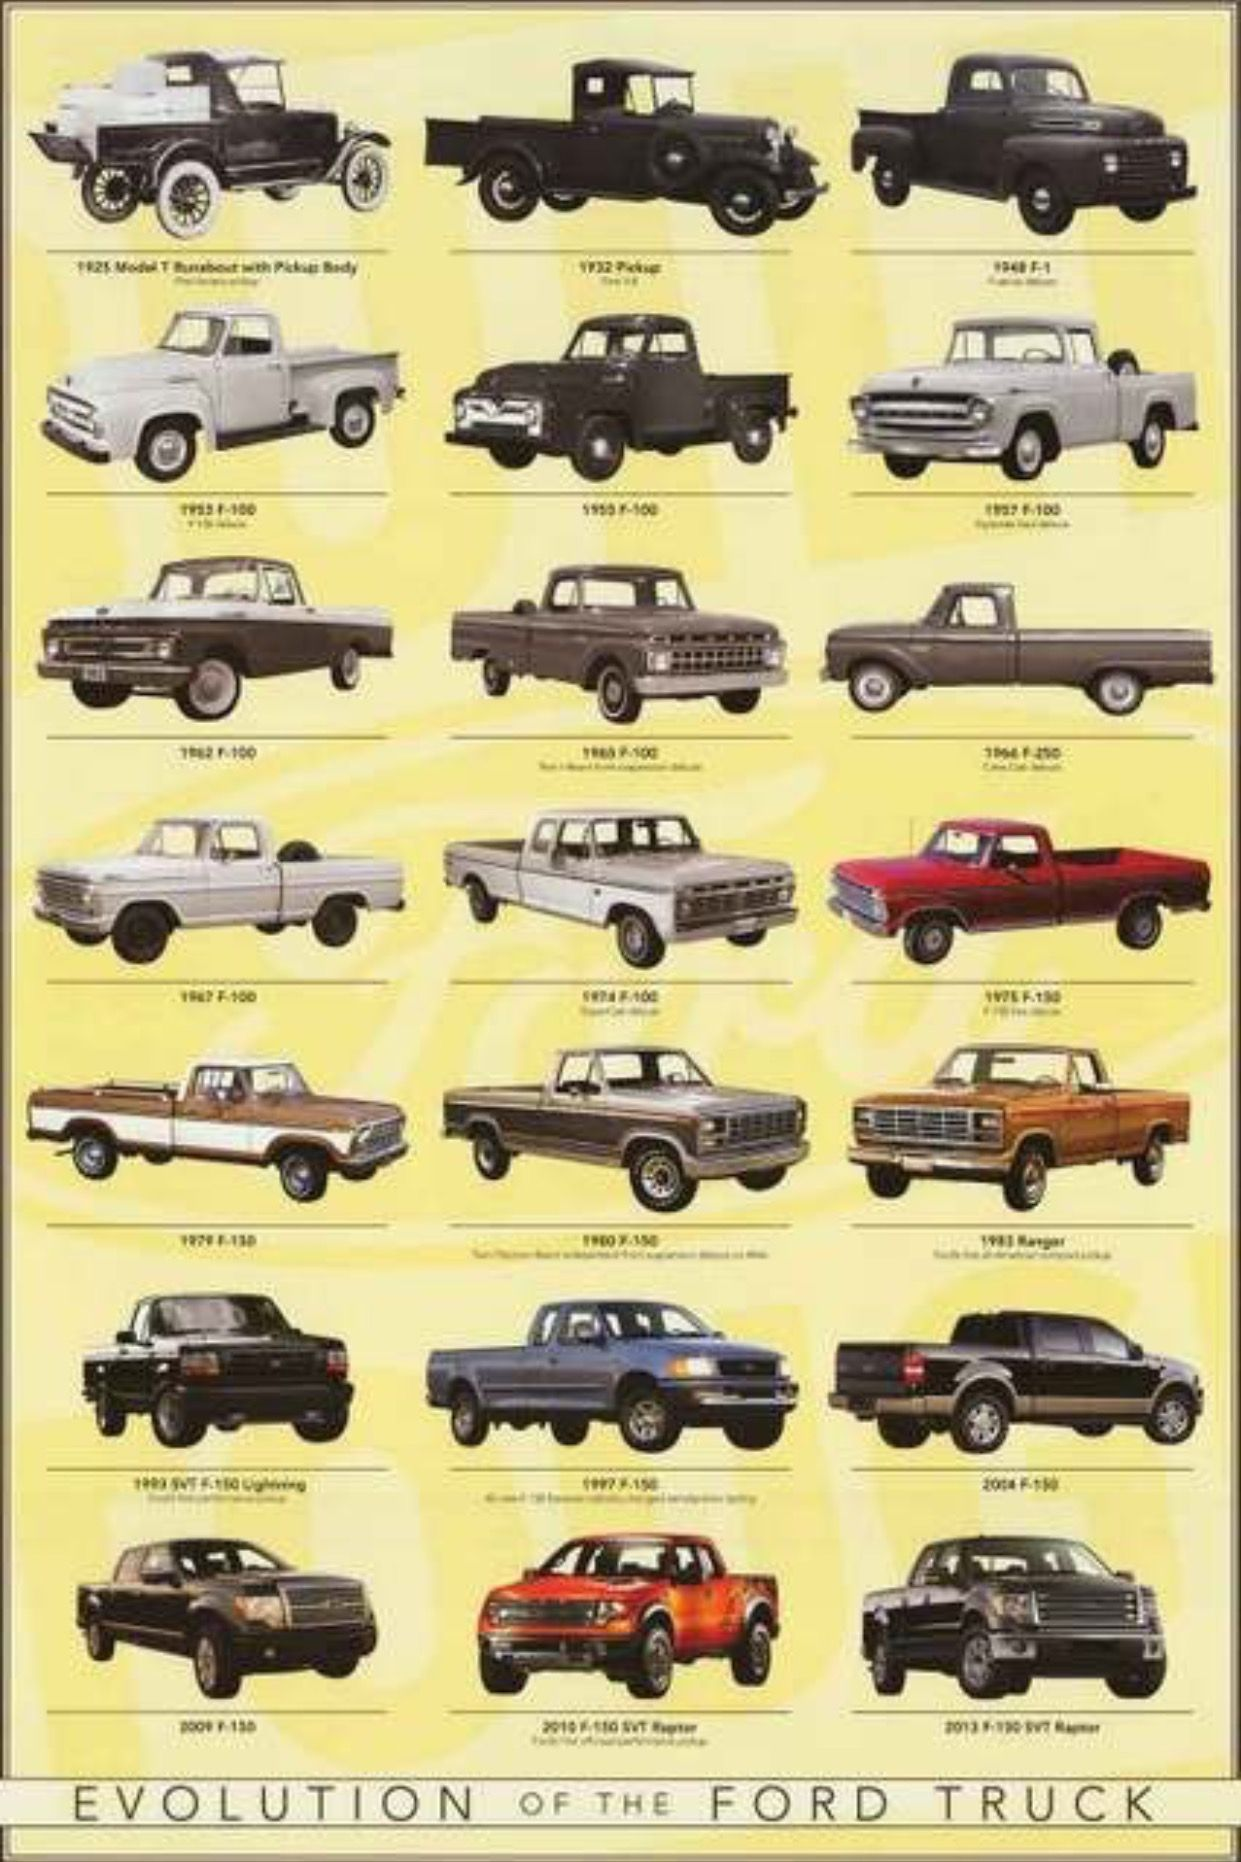 Evolution Of The Ford Truck Classictrucks Ford Trucks Ford Pickup Trucks Classic Ford Trucks